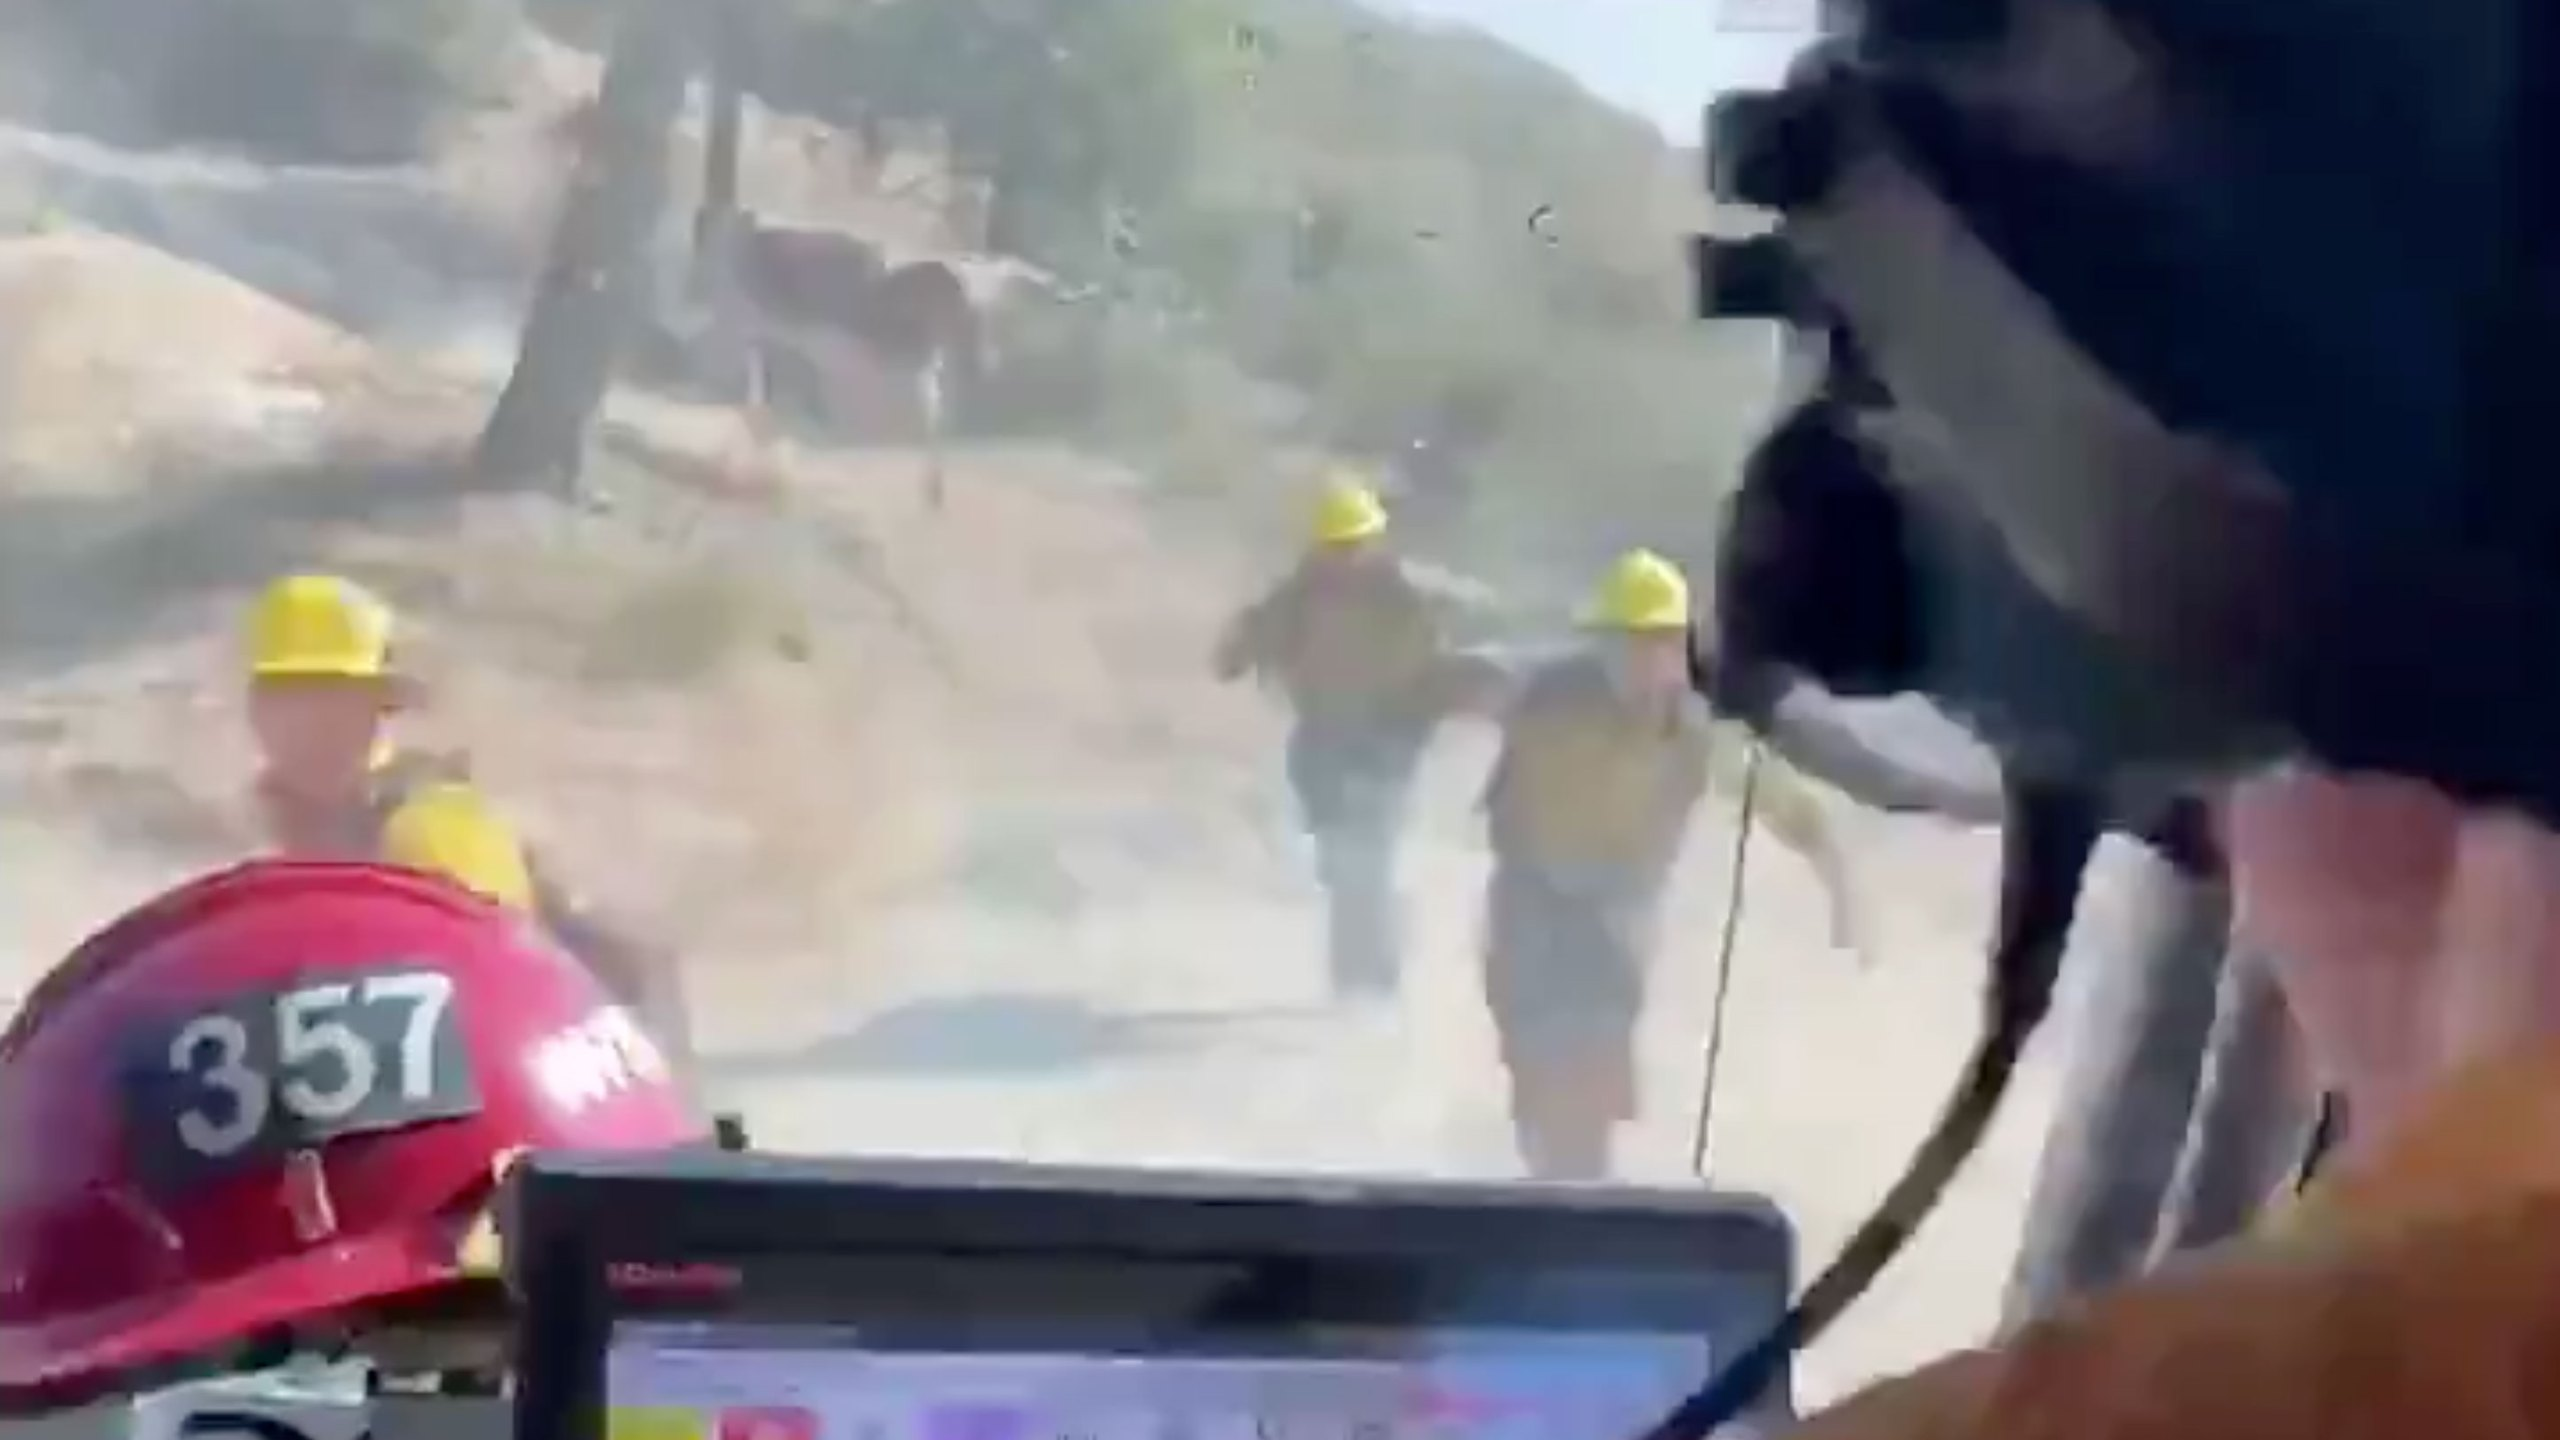 A screenshot from a video tweeted by the Ventura County Fire Department on Aug. 14, 2020 shows firefighters running away from a bull while responding to the Lake Fire in northwest L.A. County.